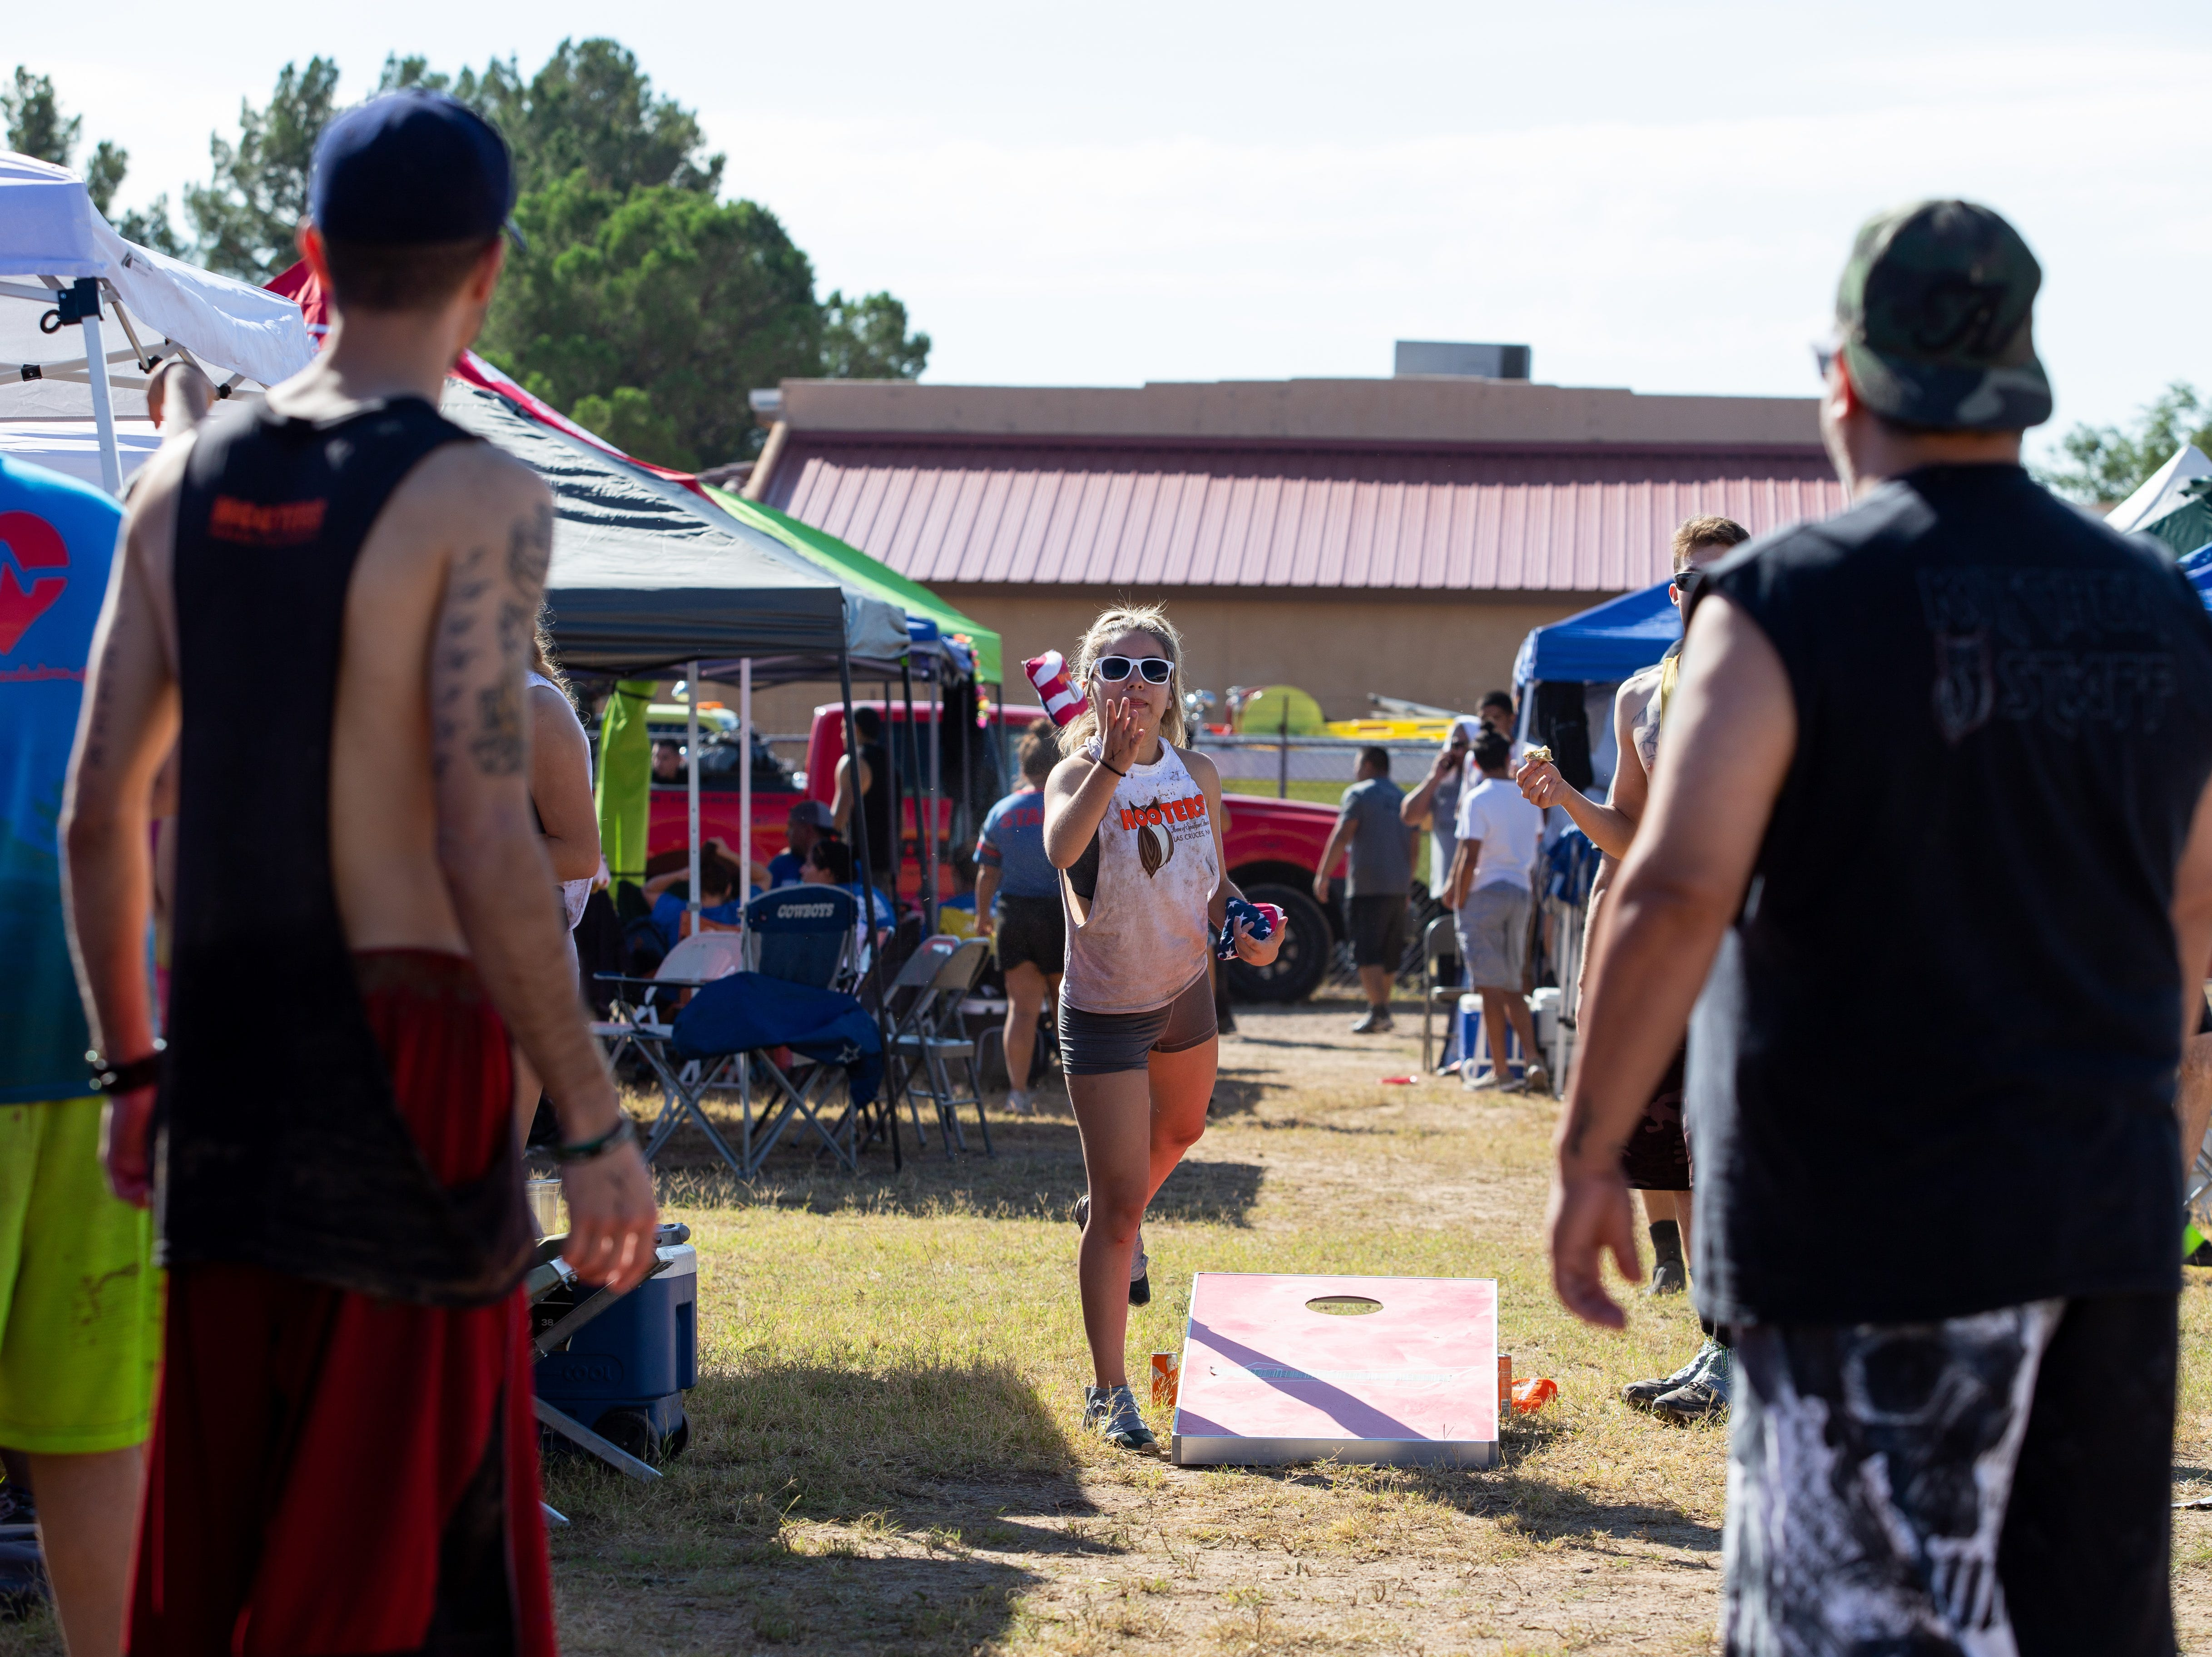 Danielle Silva of team Hooters flings a beanbag during a cornhole game at the 9th Annual Mudd Volleyball tournament on September 8, 2018.